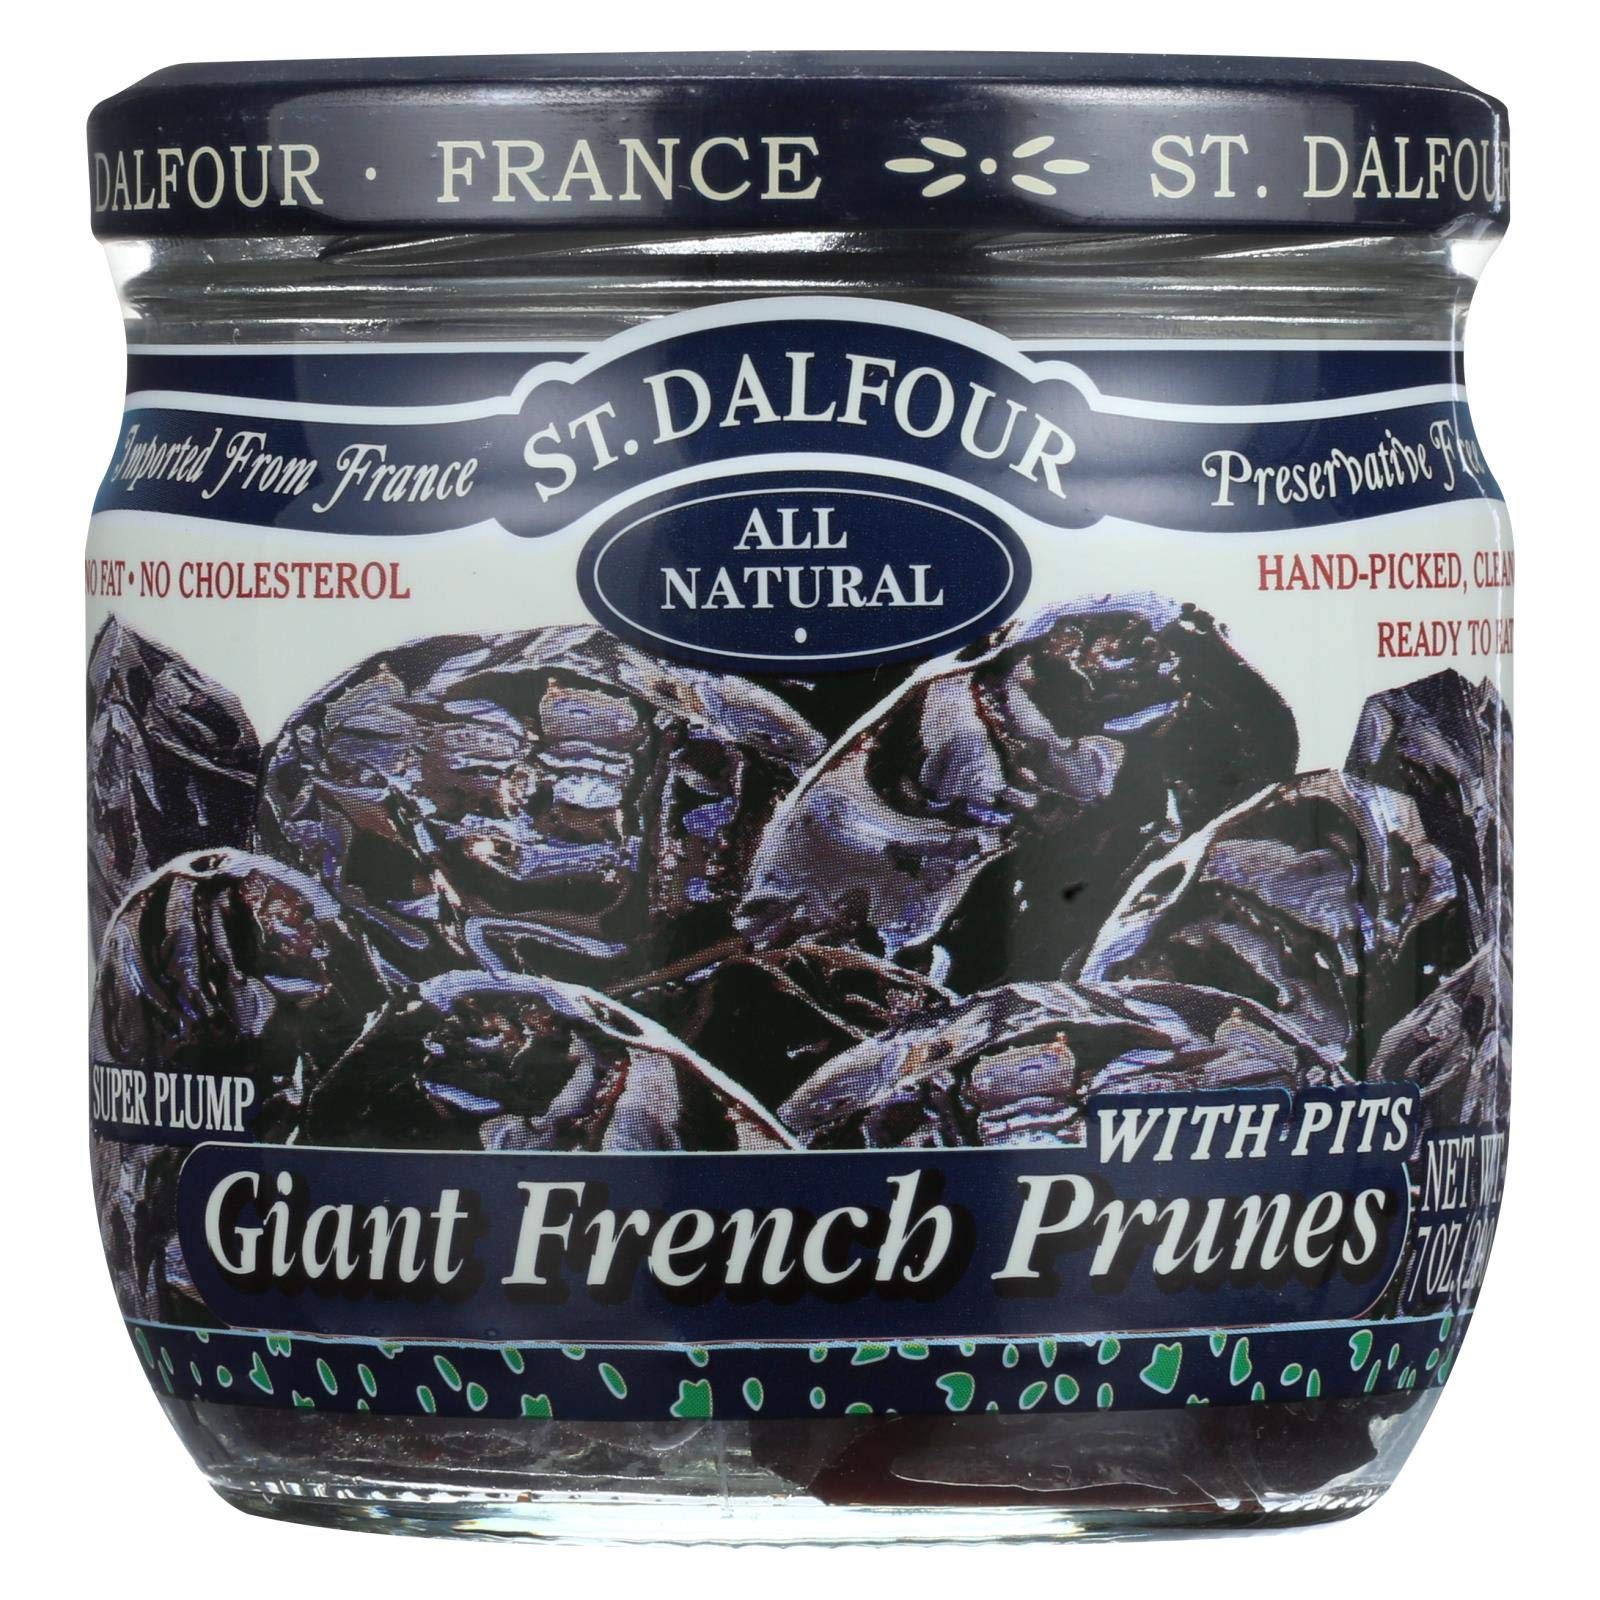 St Dalfour Prunes - French - Giant - With Pits - 7 oz - Case of 6 by St. Dalfour